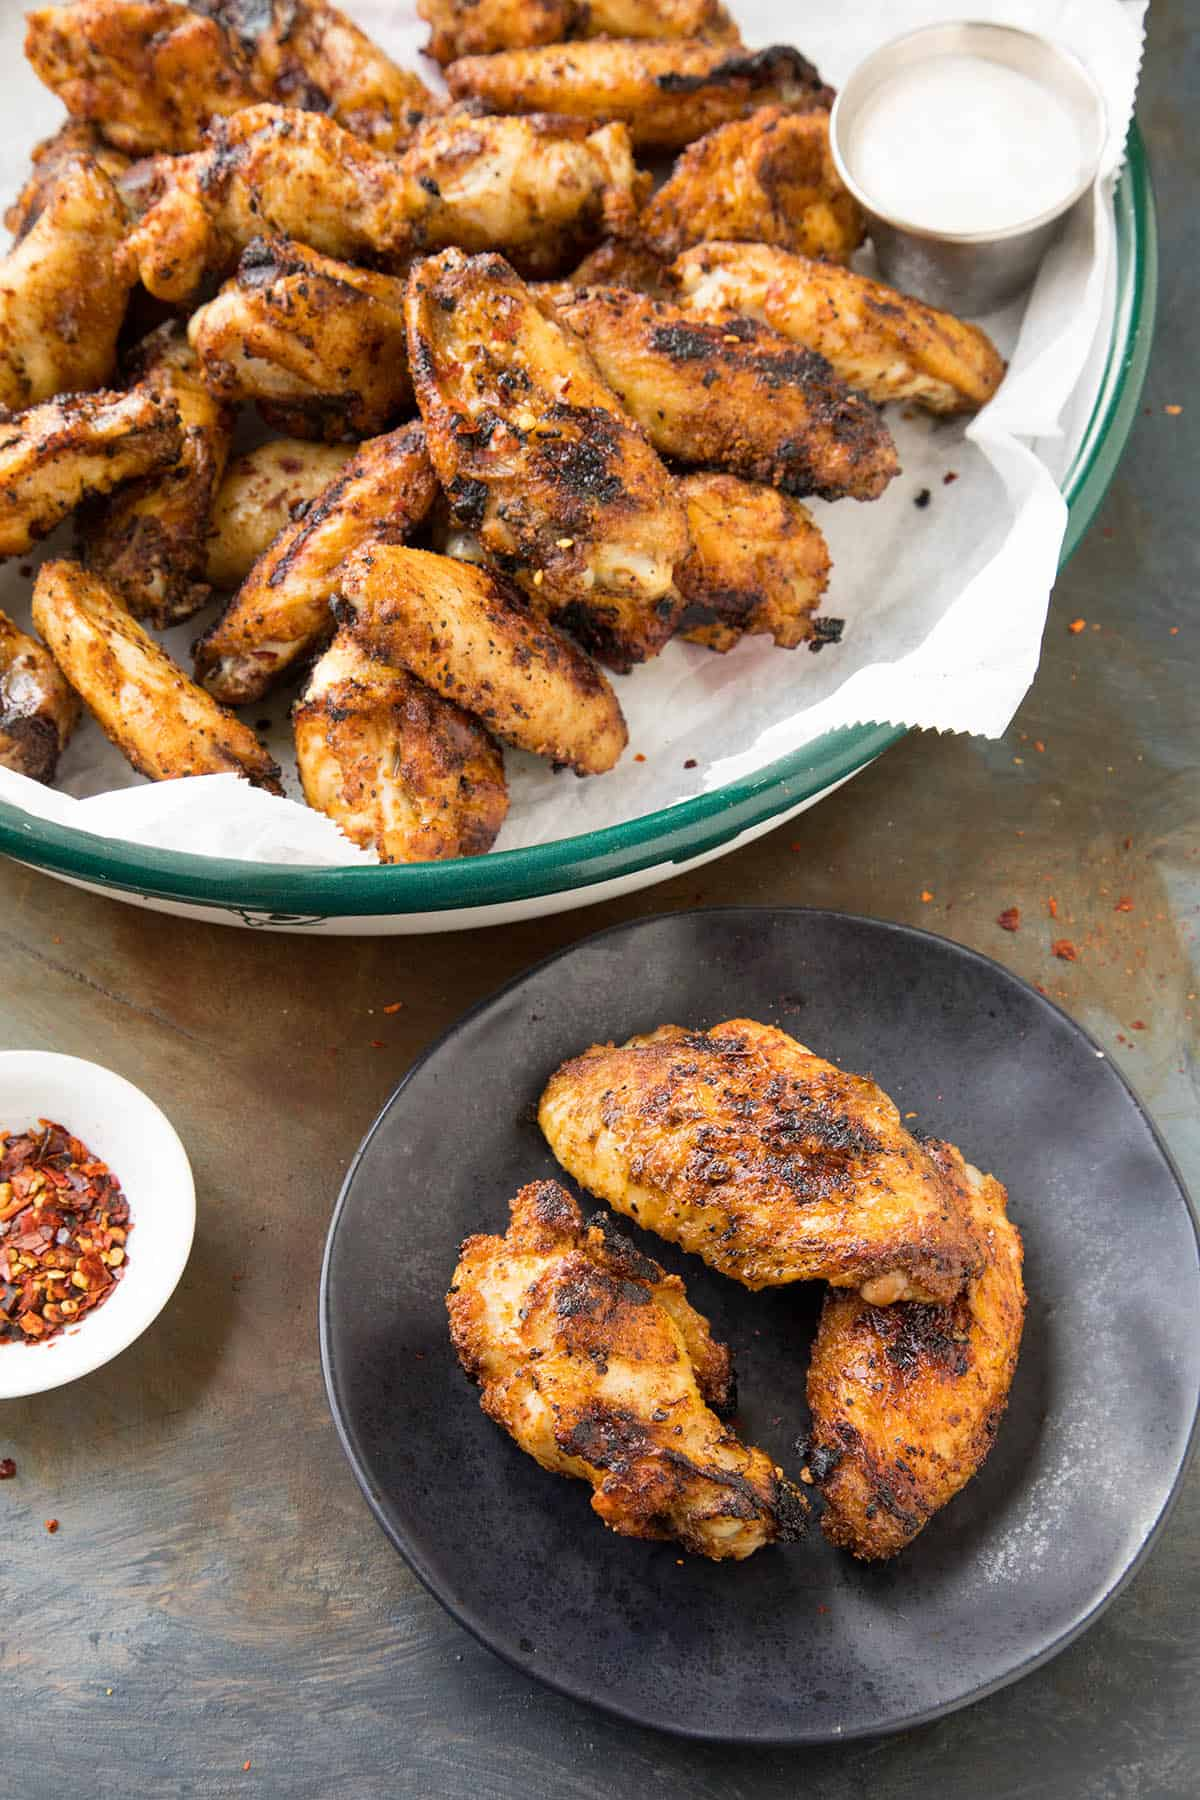 These Grilled Ghost Pepper Chicken Wings are ready to eat!